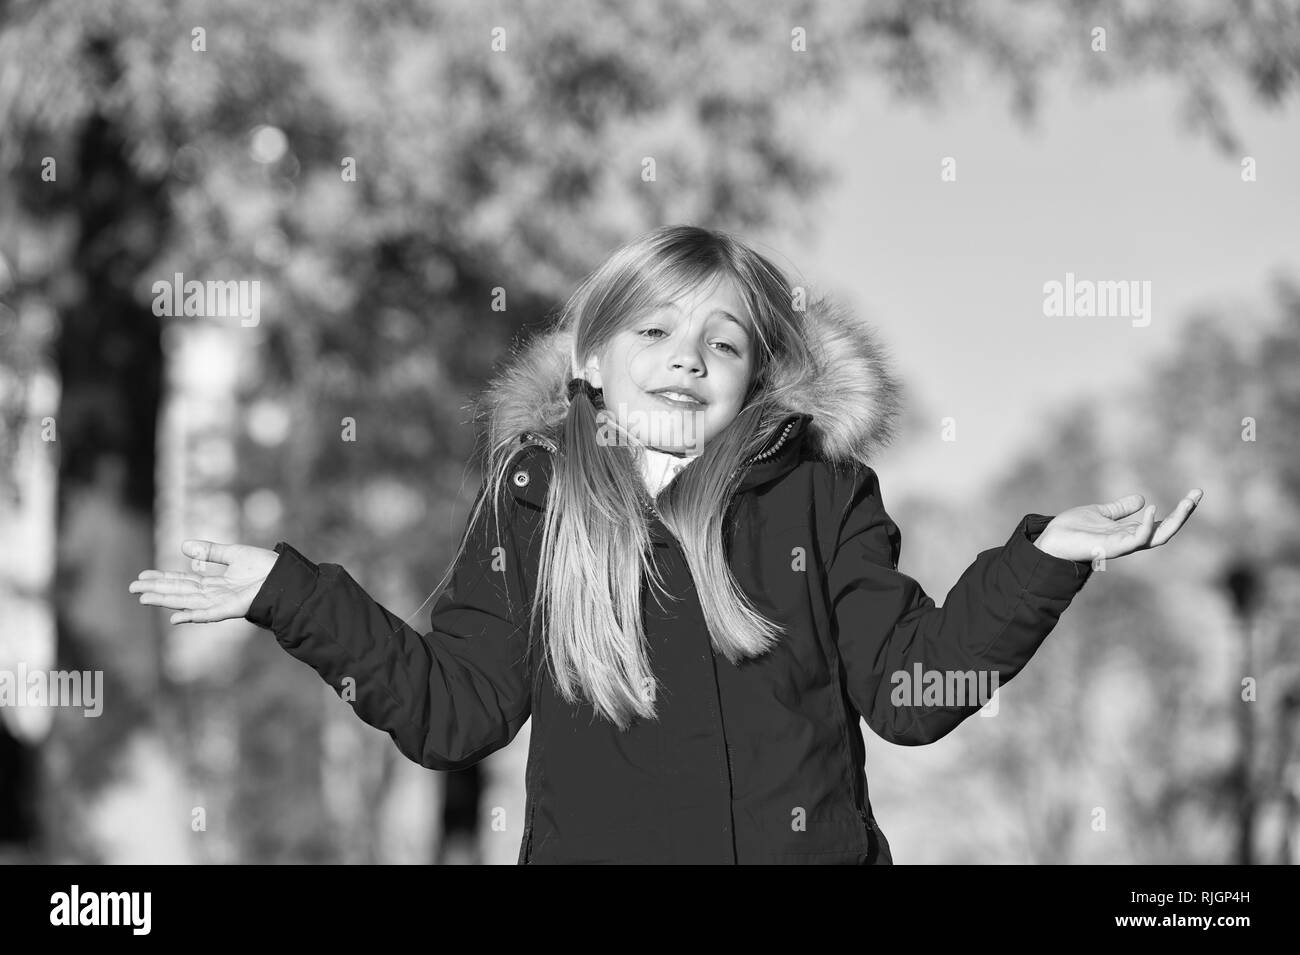 Happy small girl in autumn park. Small girl did it in mistake. Oops. Even the wisest of us can make a mistake. The first touches of autumn. Enjoy happy childhood. - Stock Image